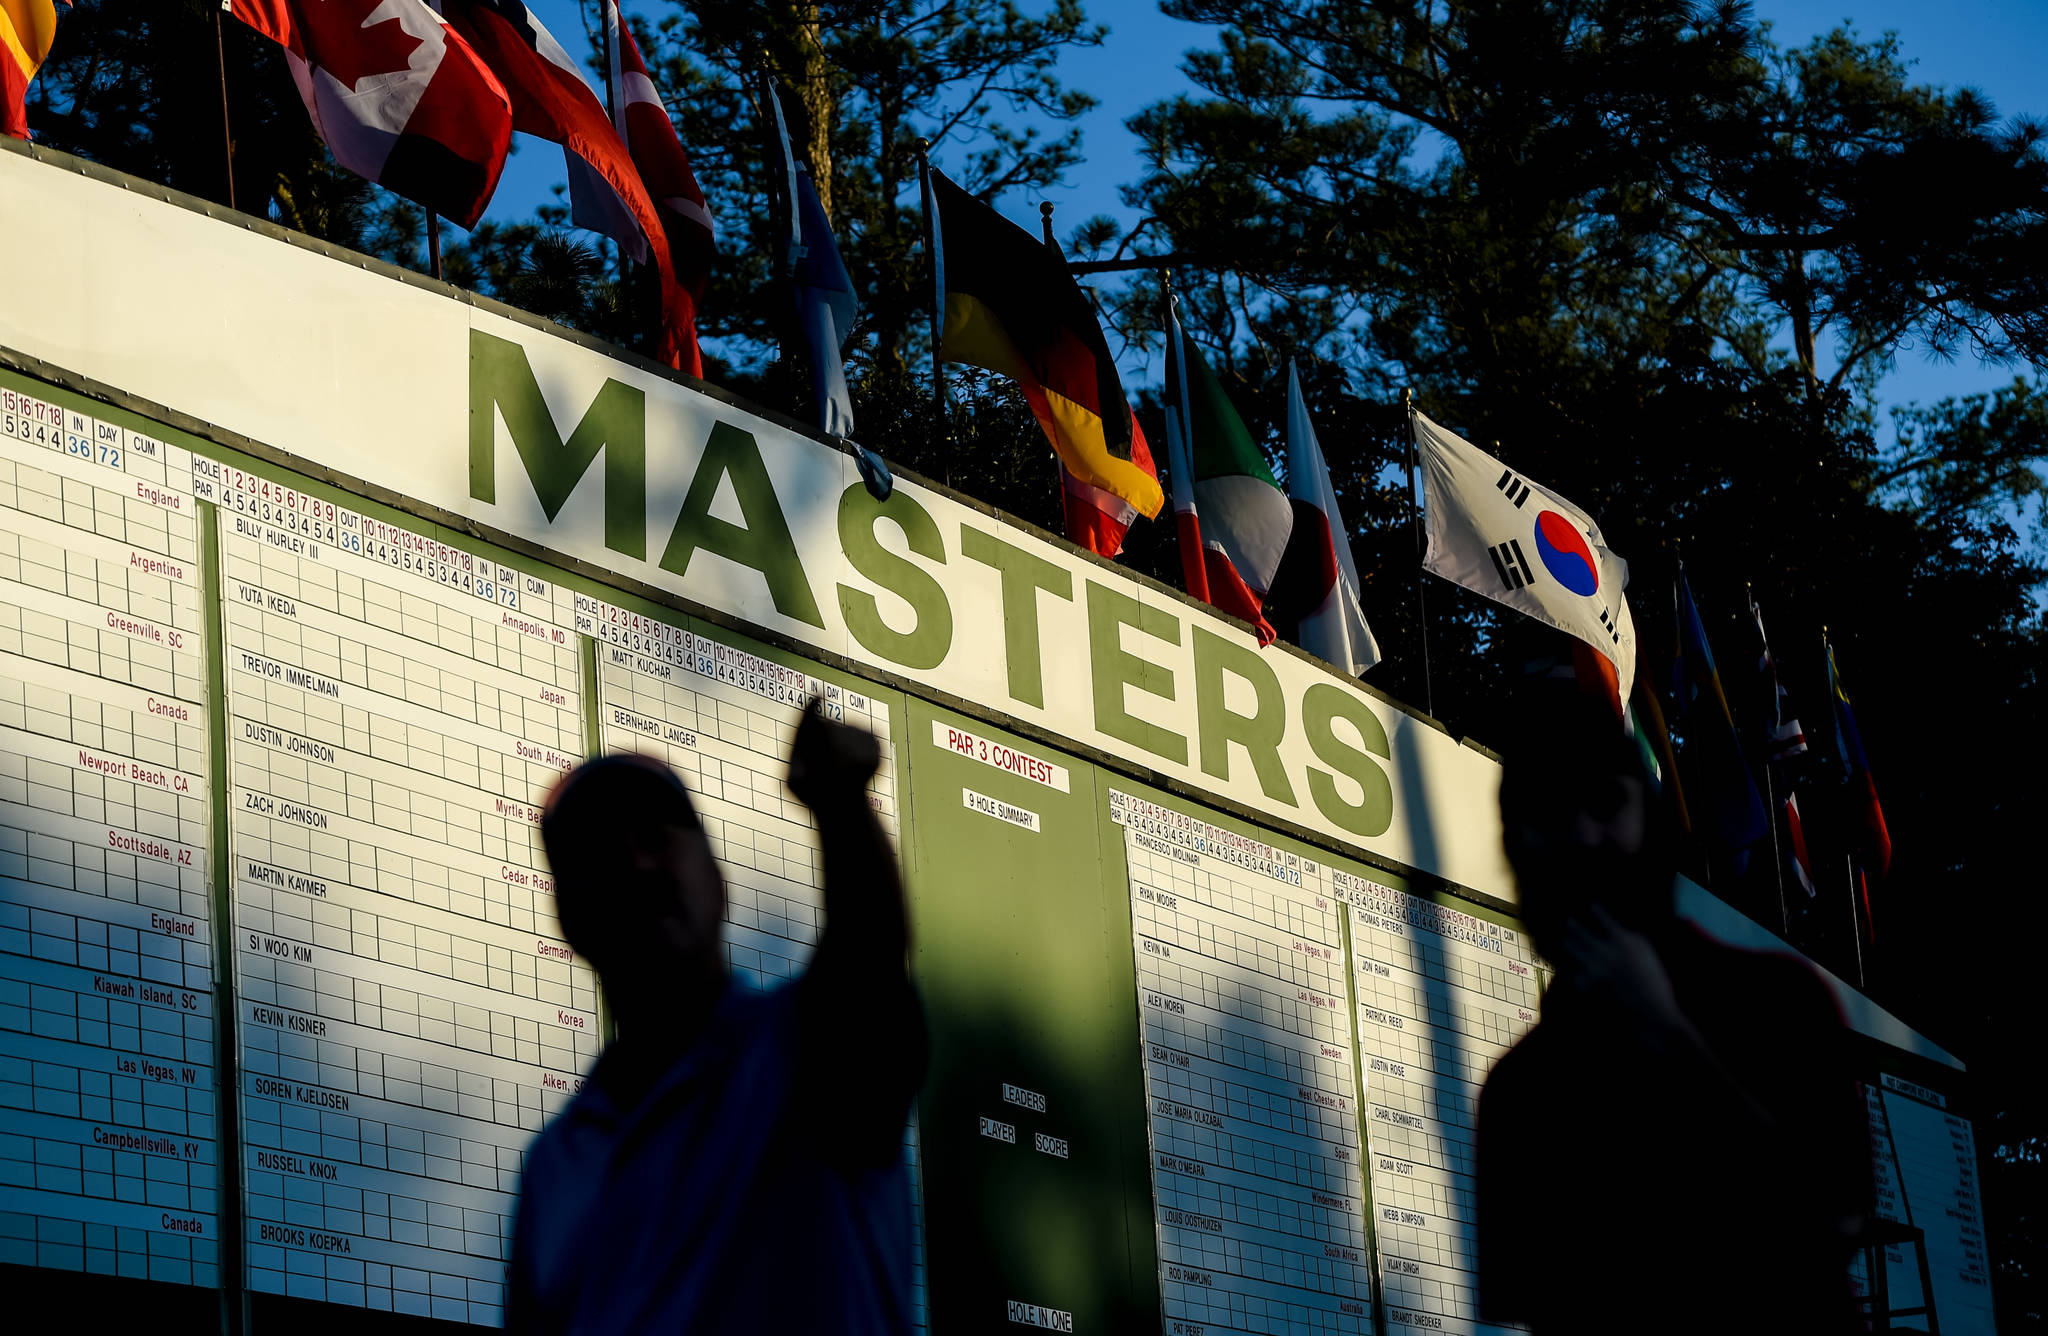 Possible course changes could be topic of Augusta National chairman's annual news conference